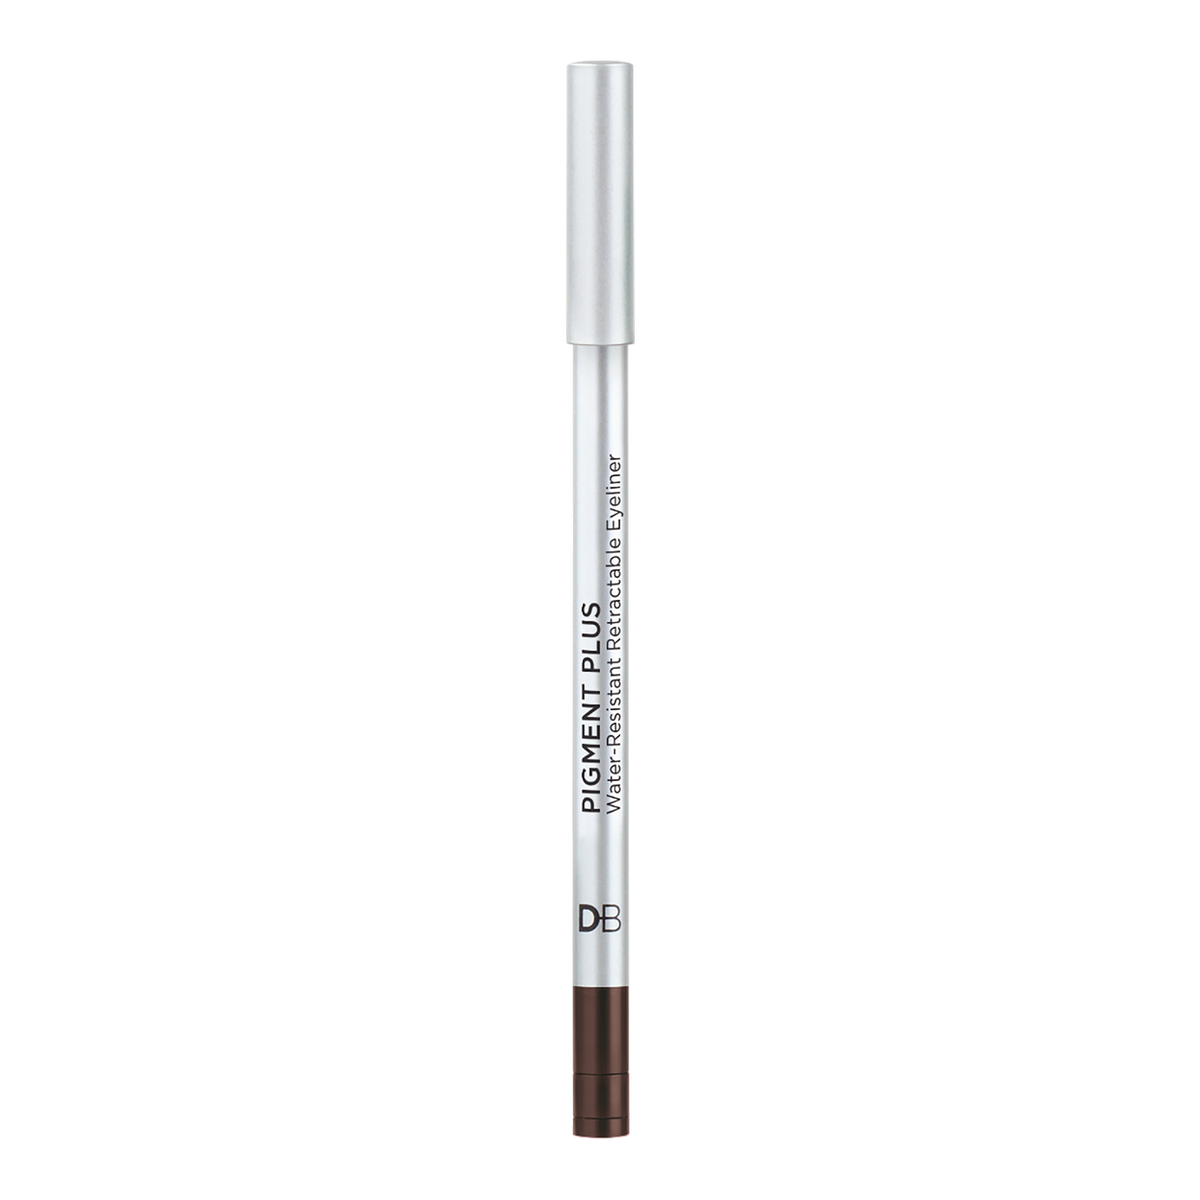 Pigment Plus Water-Resistant Retractable Eyeliner (Chocolate Shard)